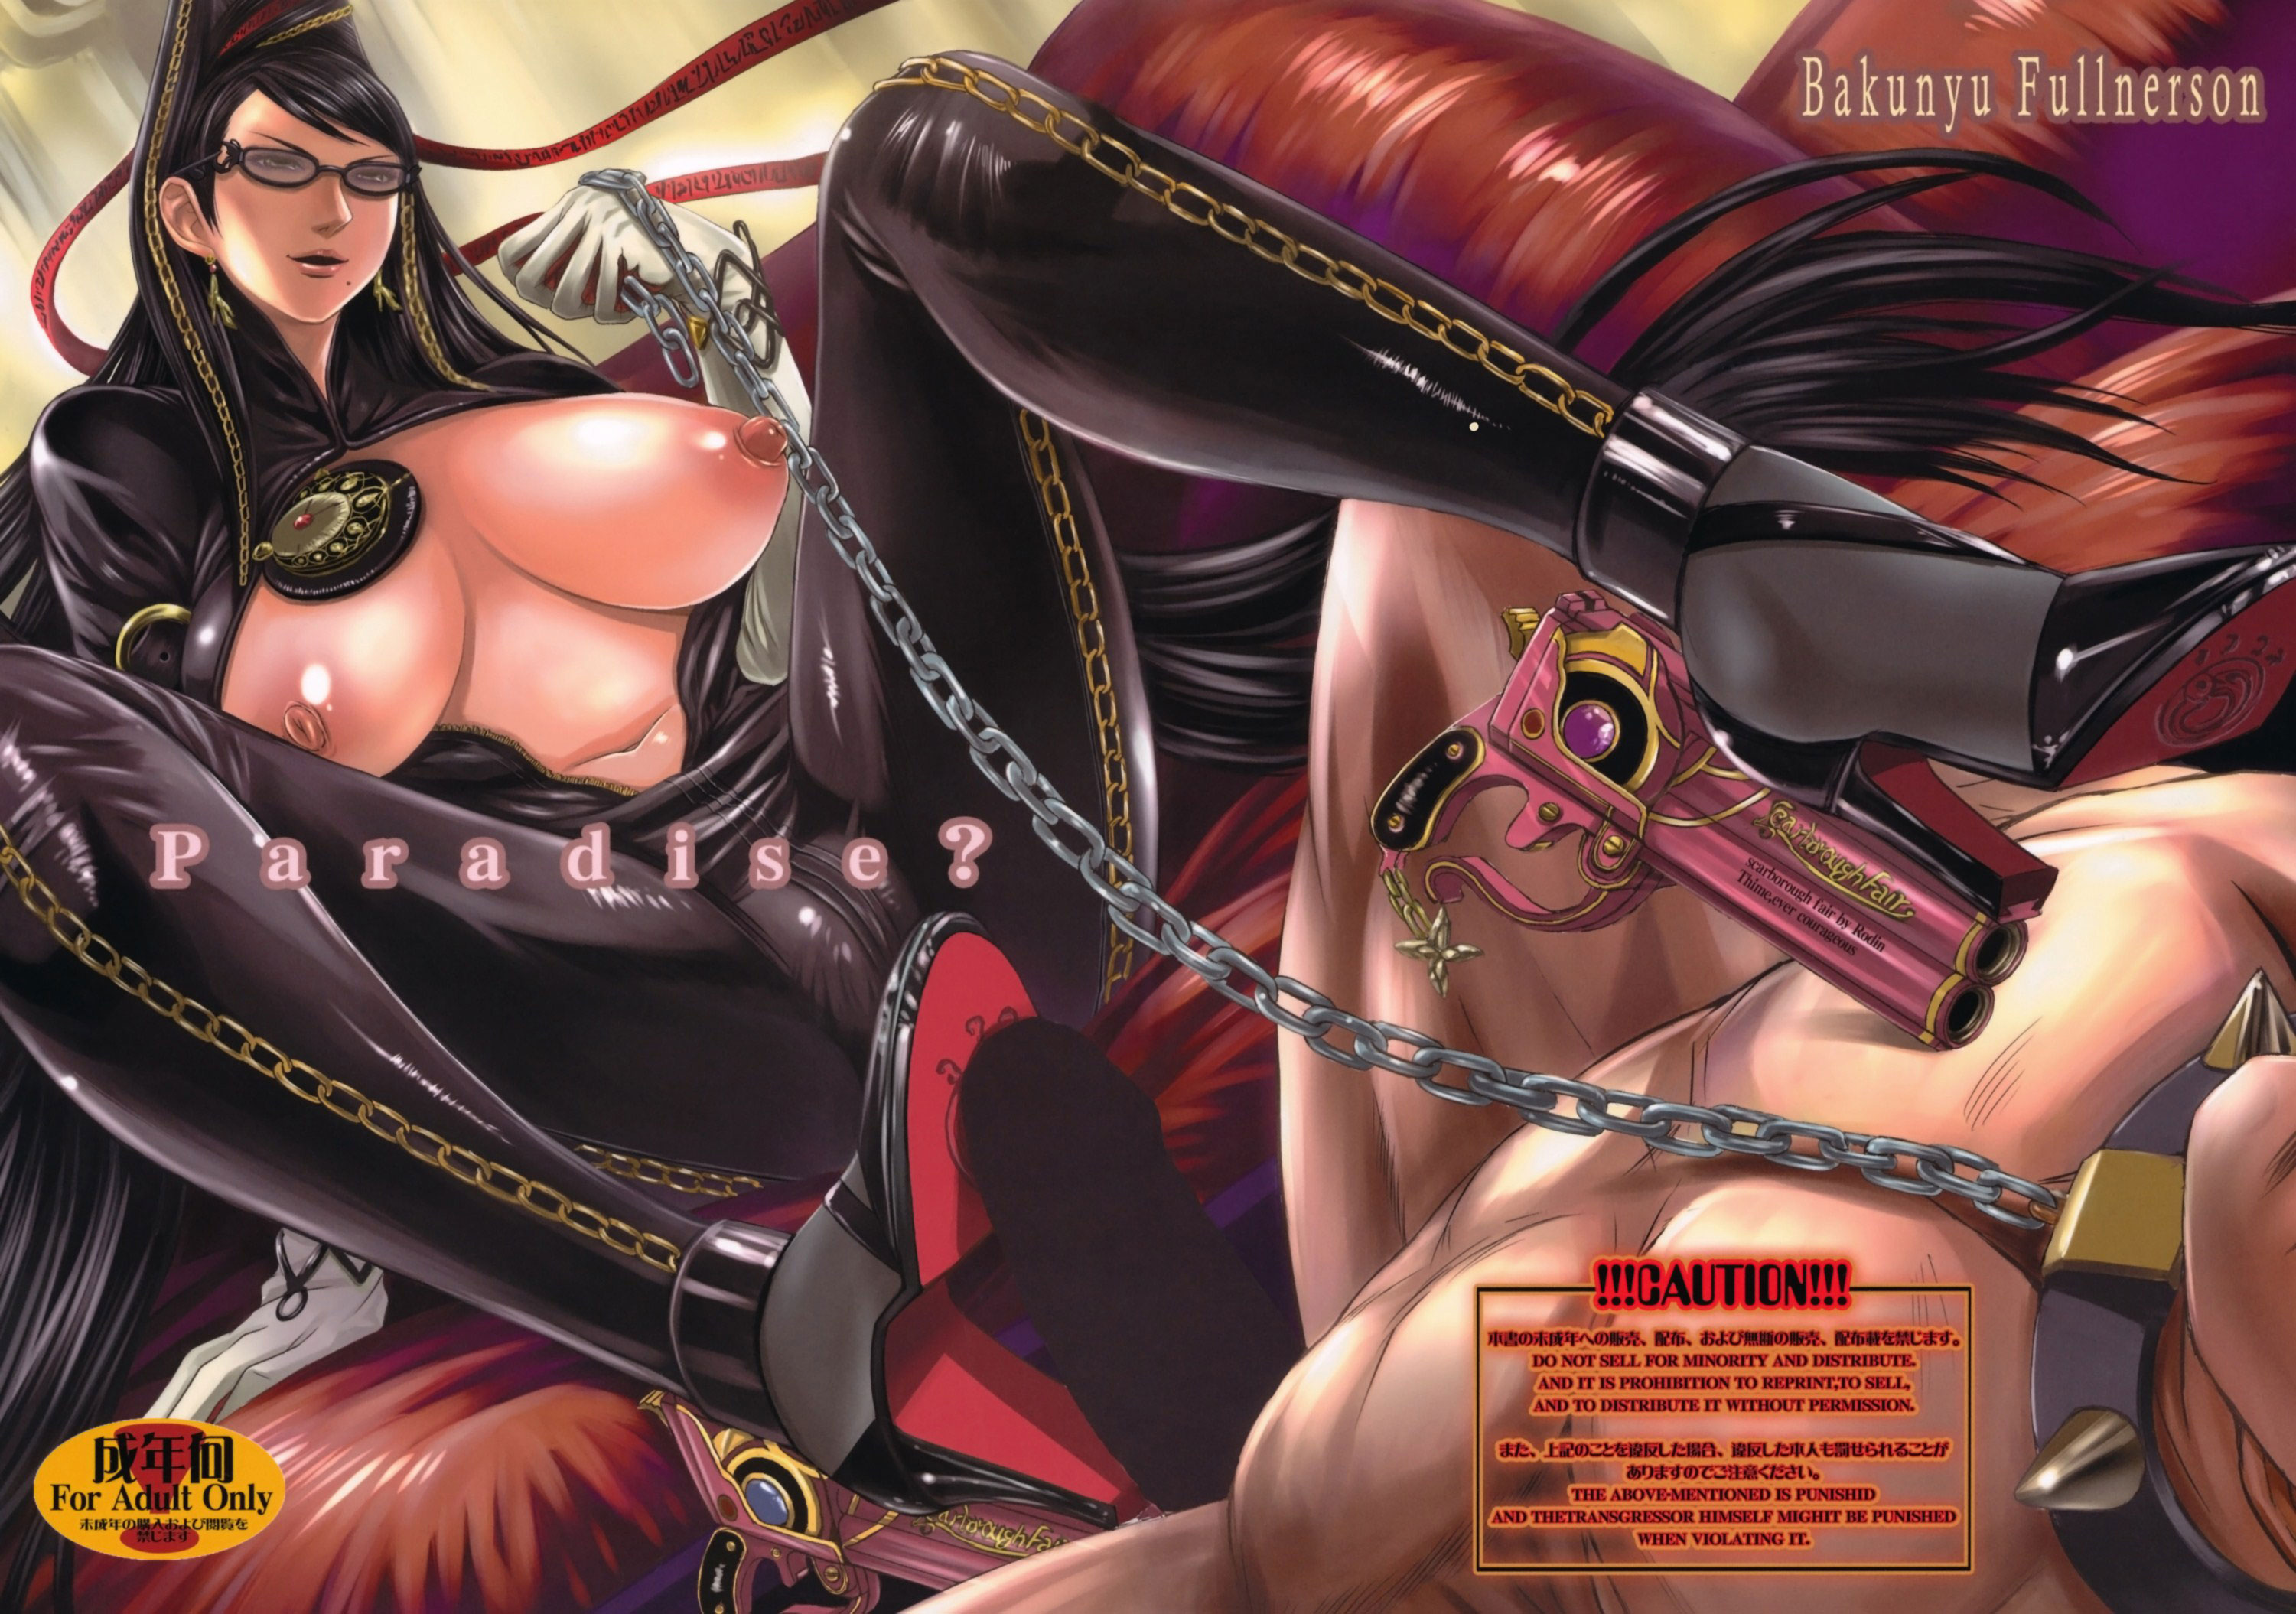 Bayonetta hentai gifs sex galleries